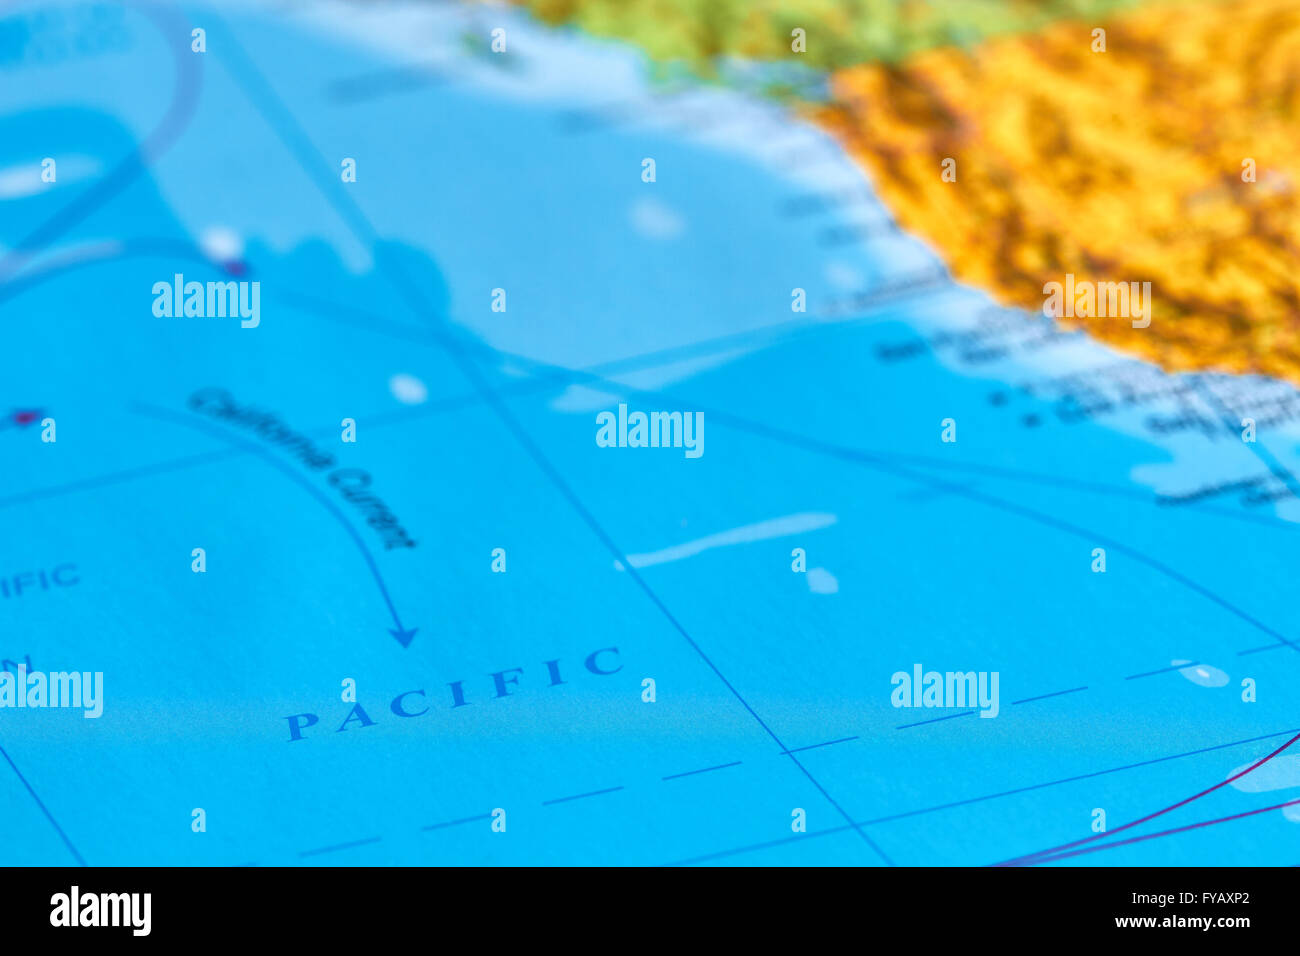 Pacific War Map Stockfotos & Pacific War Map Bilder - Alamy